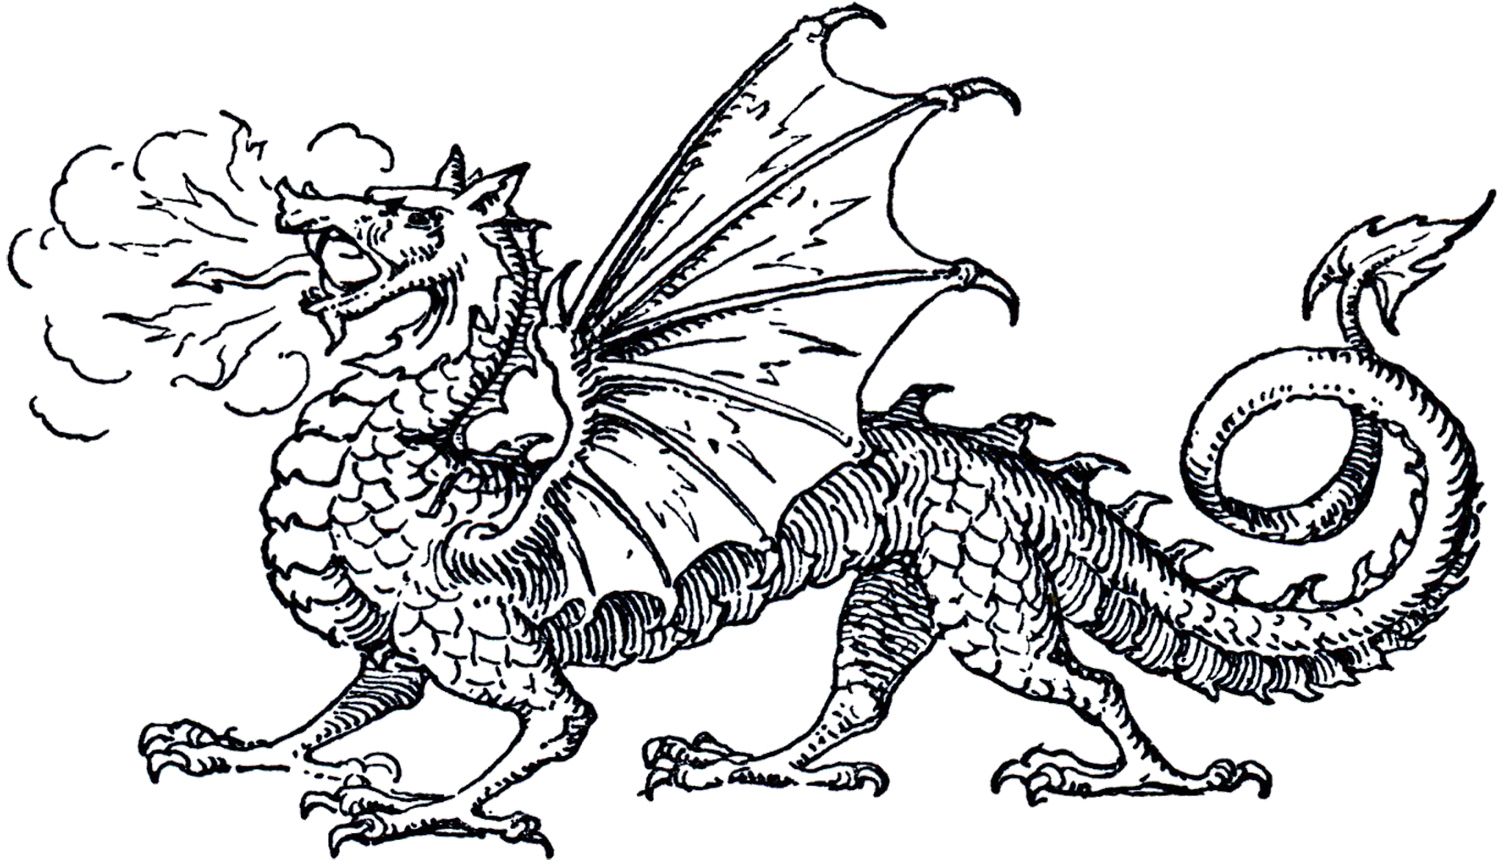 Free Dragon Clip Art The .-Free Dragon Clip Art The .-14